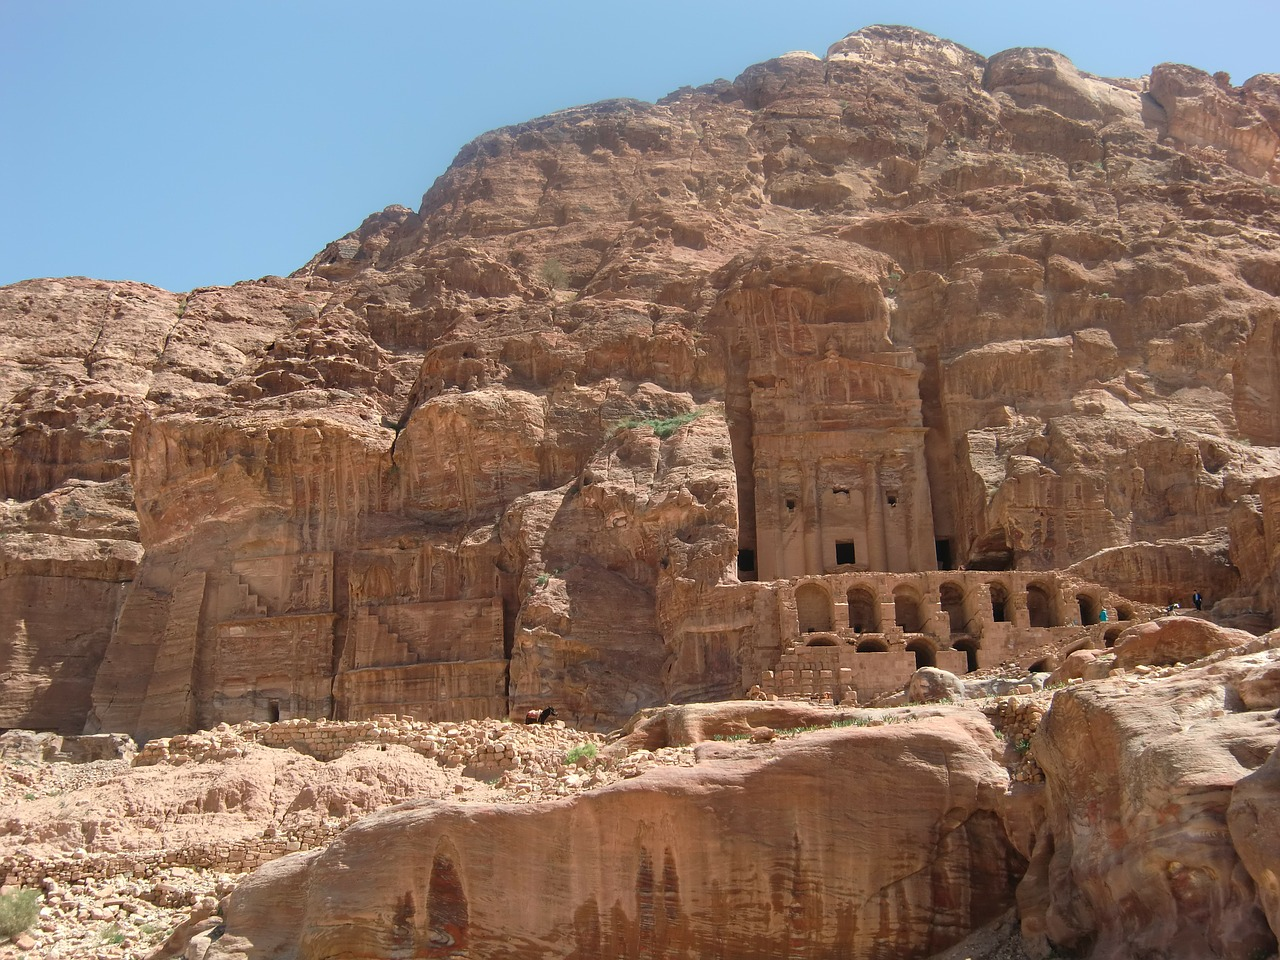 Download free photo of Petra,egypt,jordan,free pictures, free photos - from needpix.com